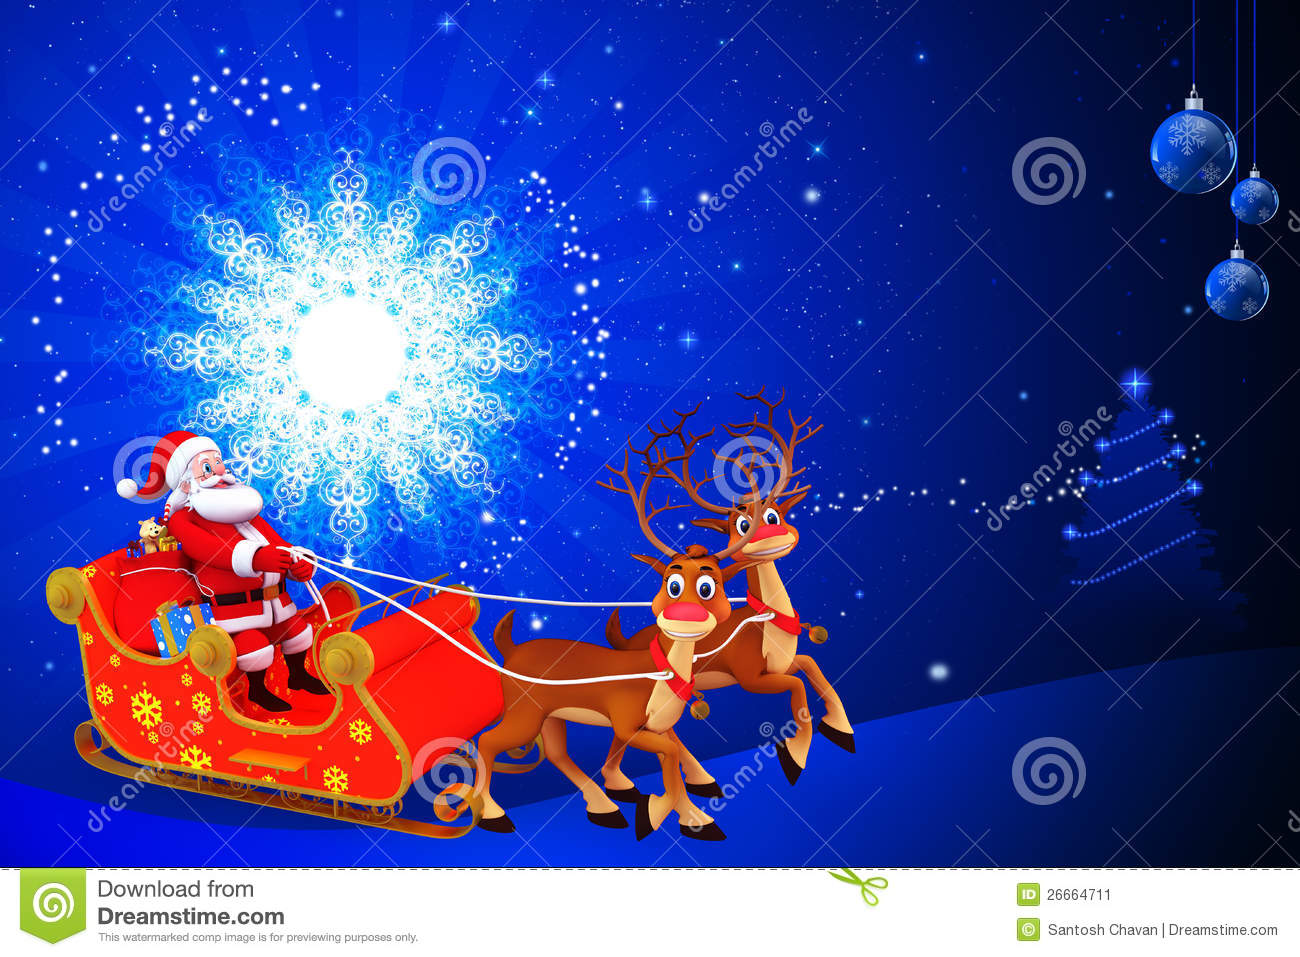 Stock Image: Santa in his sleigh with blue background. Image: 26664711